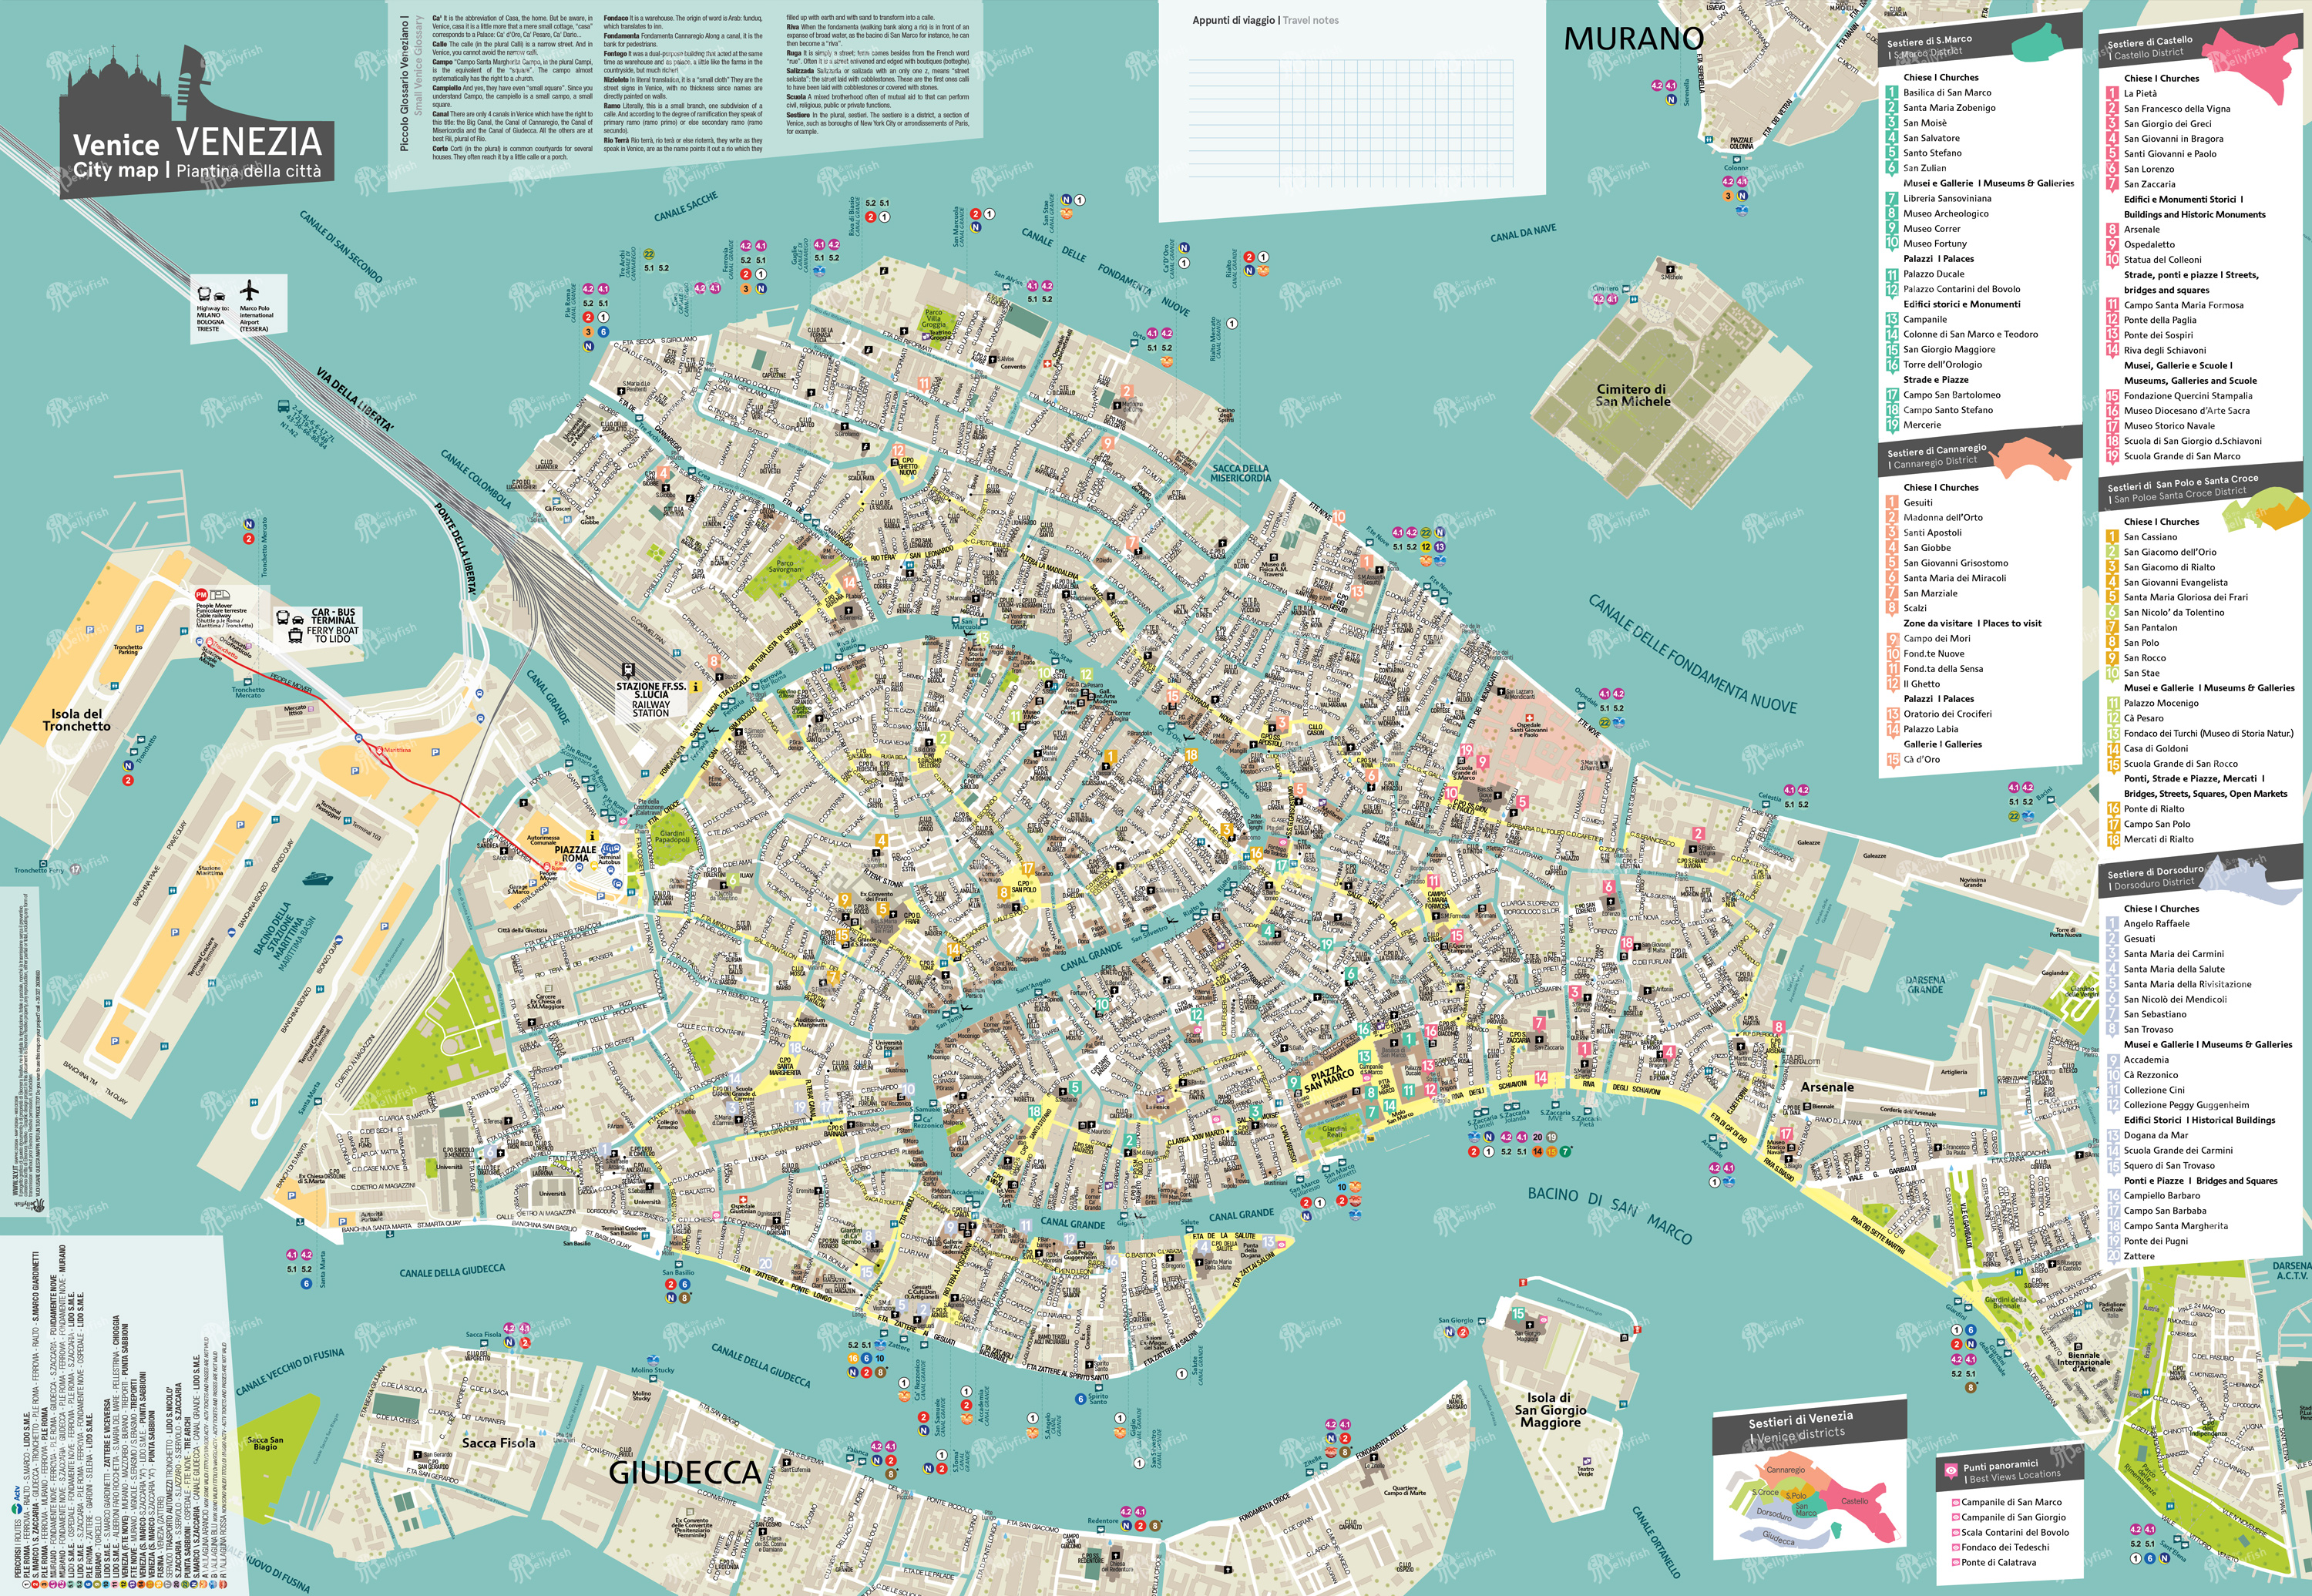 Cartina Turistica Venezia.Venice City Map Mappa Di Venezia Venice City Plan